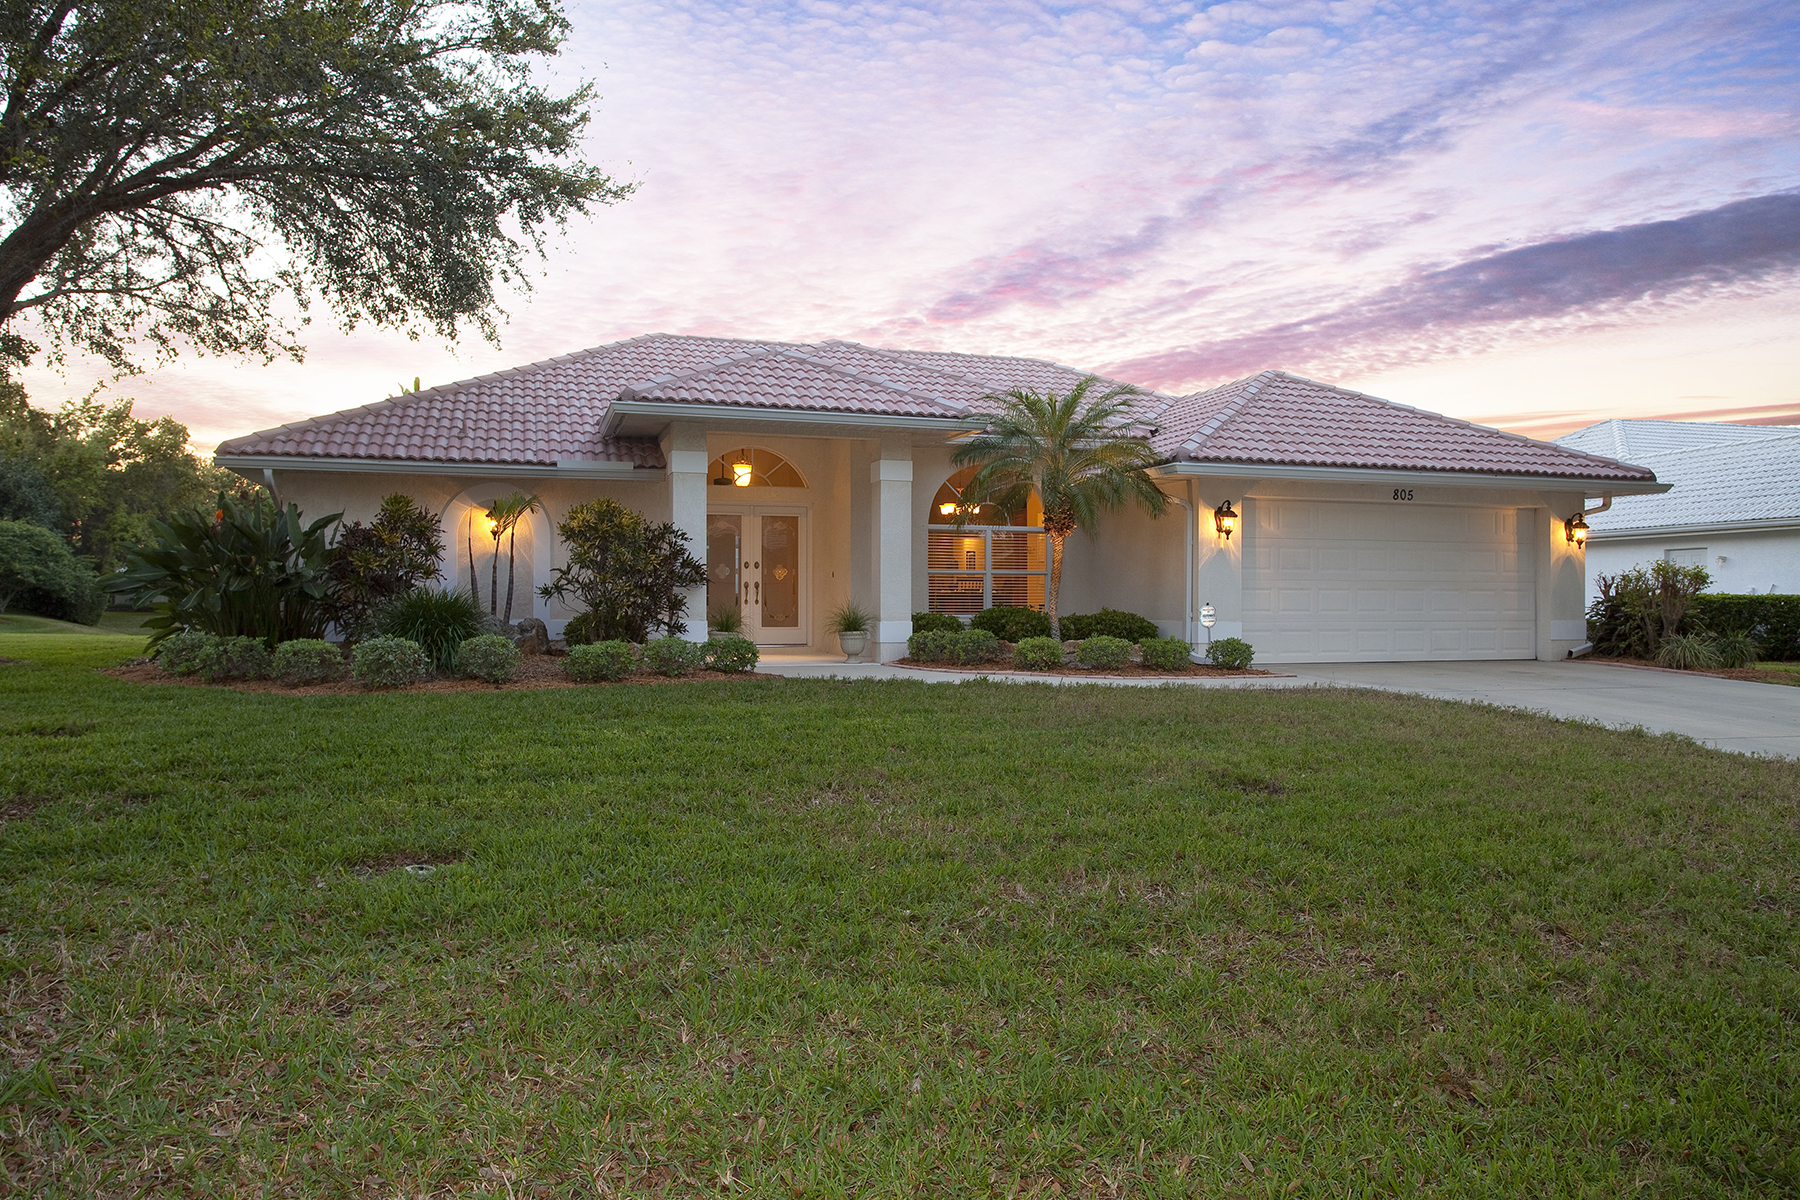 Single Family Home for Sale at BRIDLE OAKS 805 Connemara Cir Venice, Florida, 34292 United States